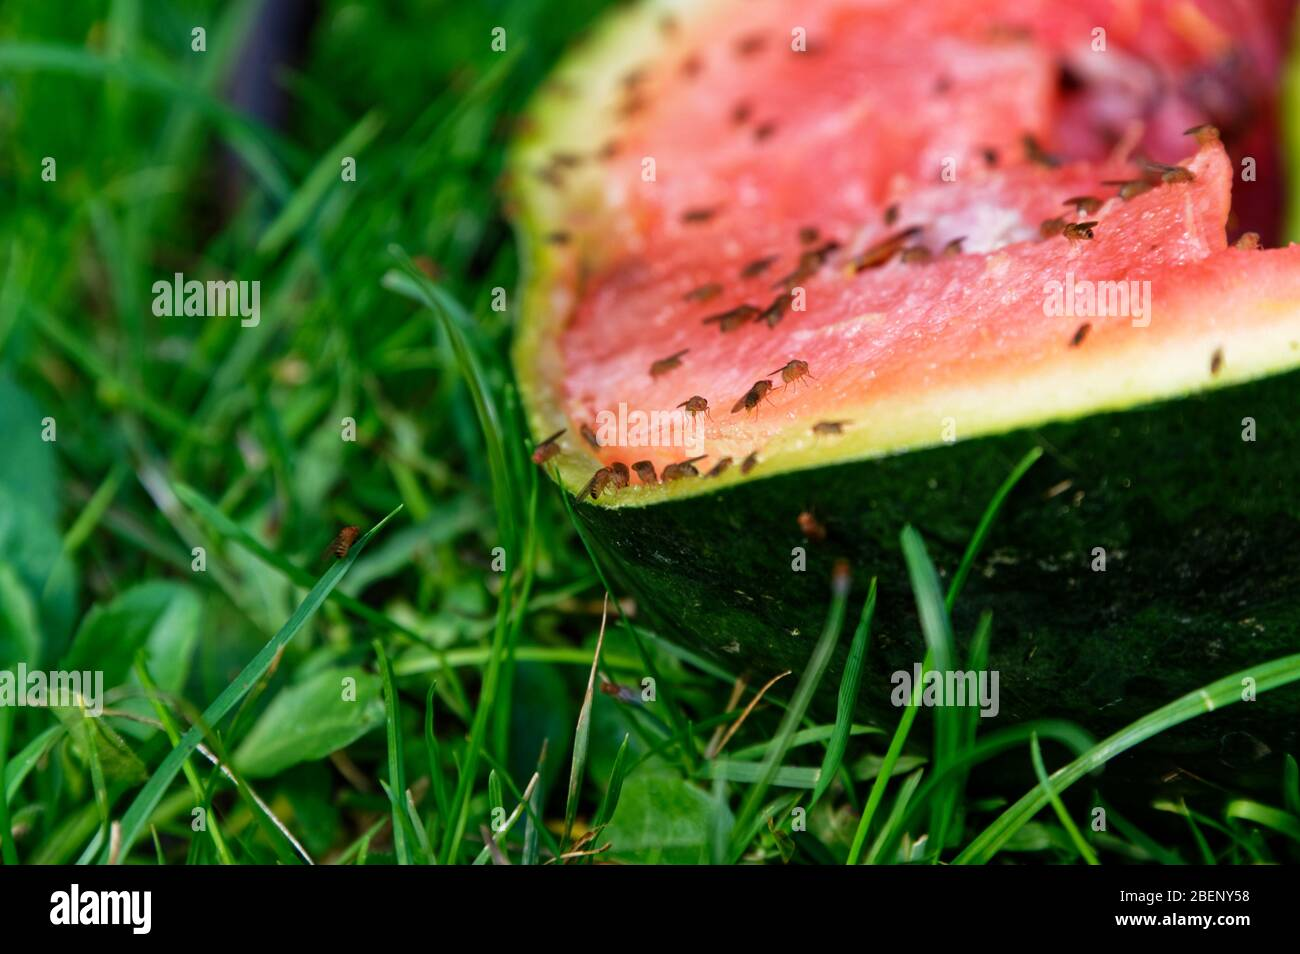 Fruit flies have discovered a fest in this discarded watermelon lying on the lawn Stock Photo